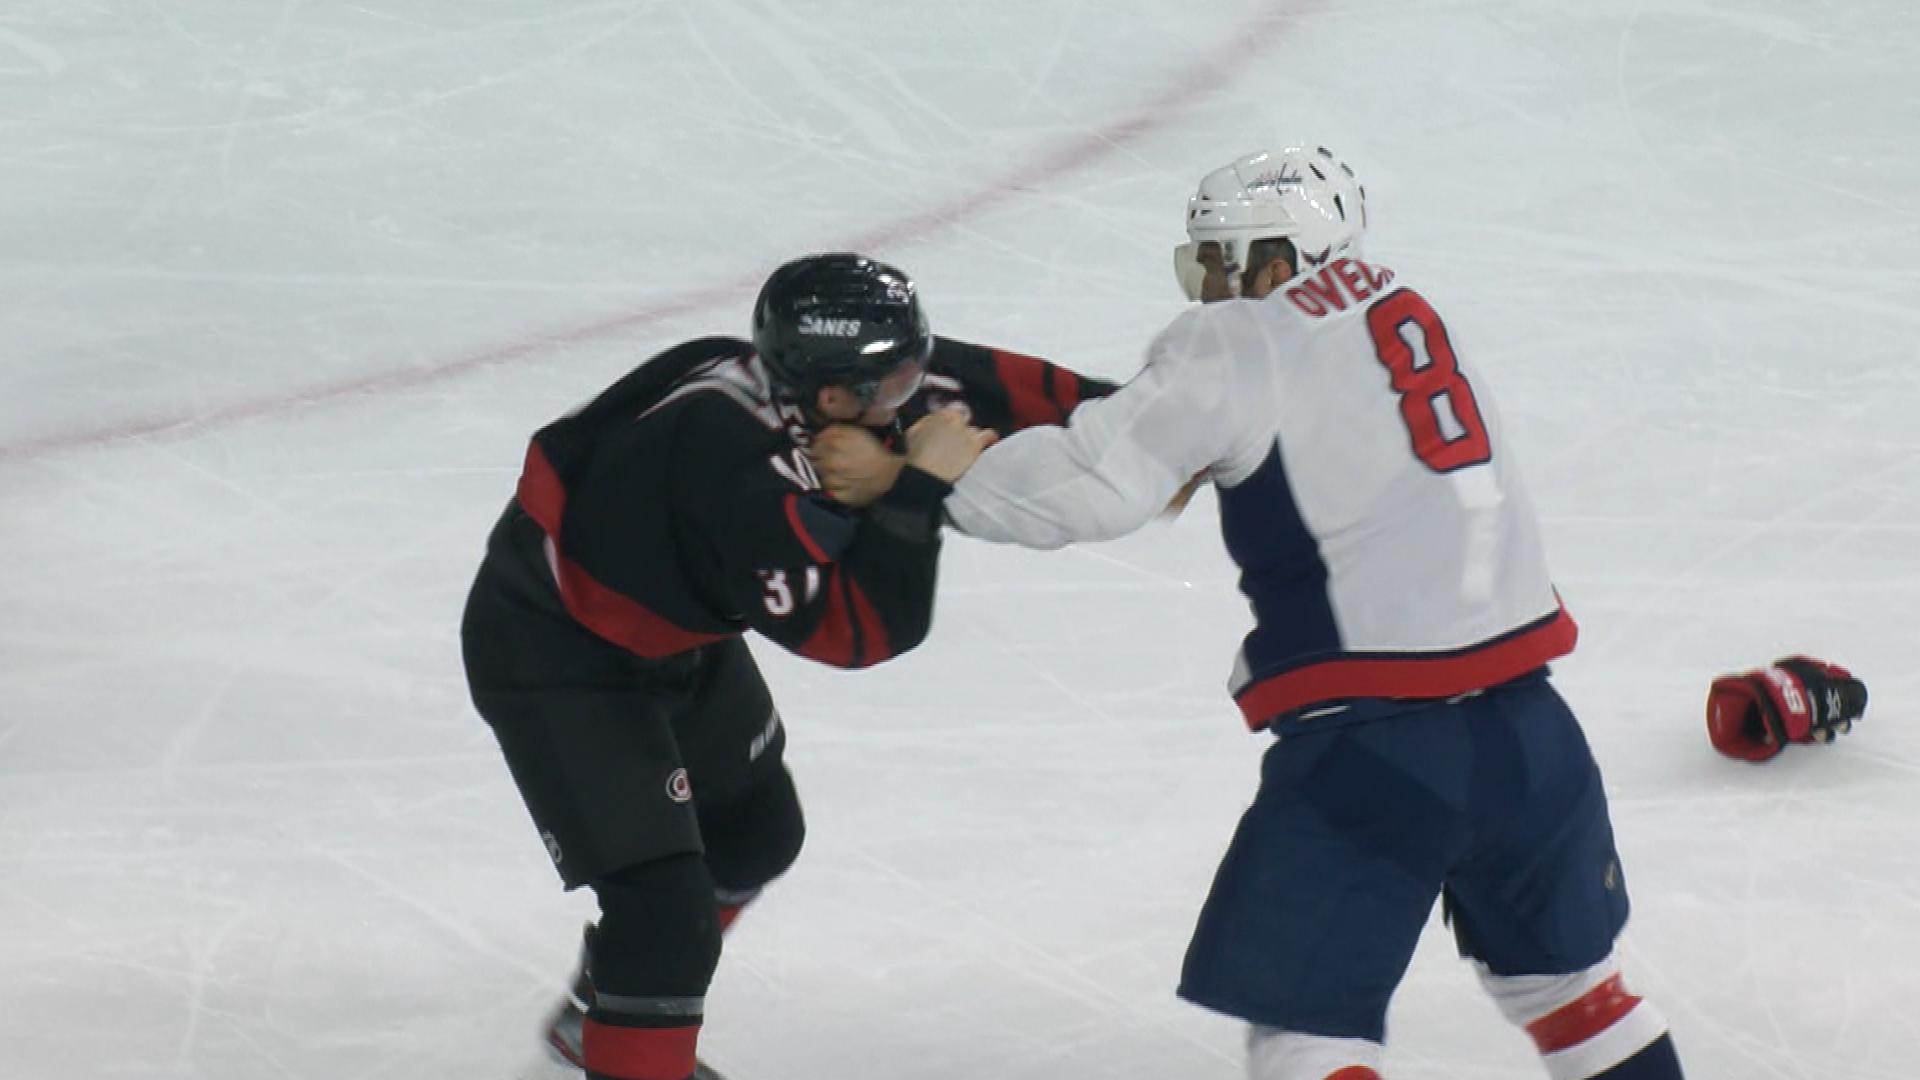 Capitals Alex Ovechkin knocks out Hurricanes' Andrei